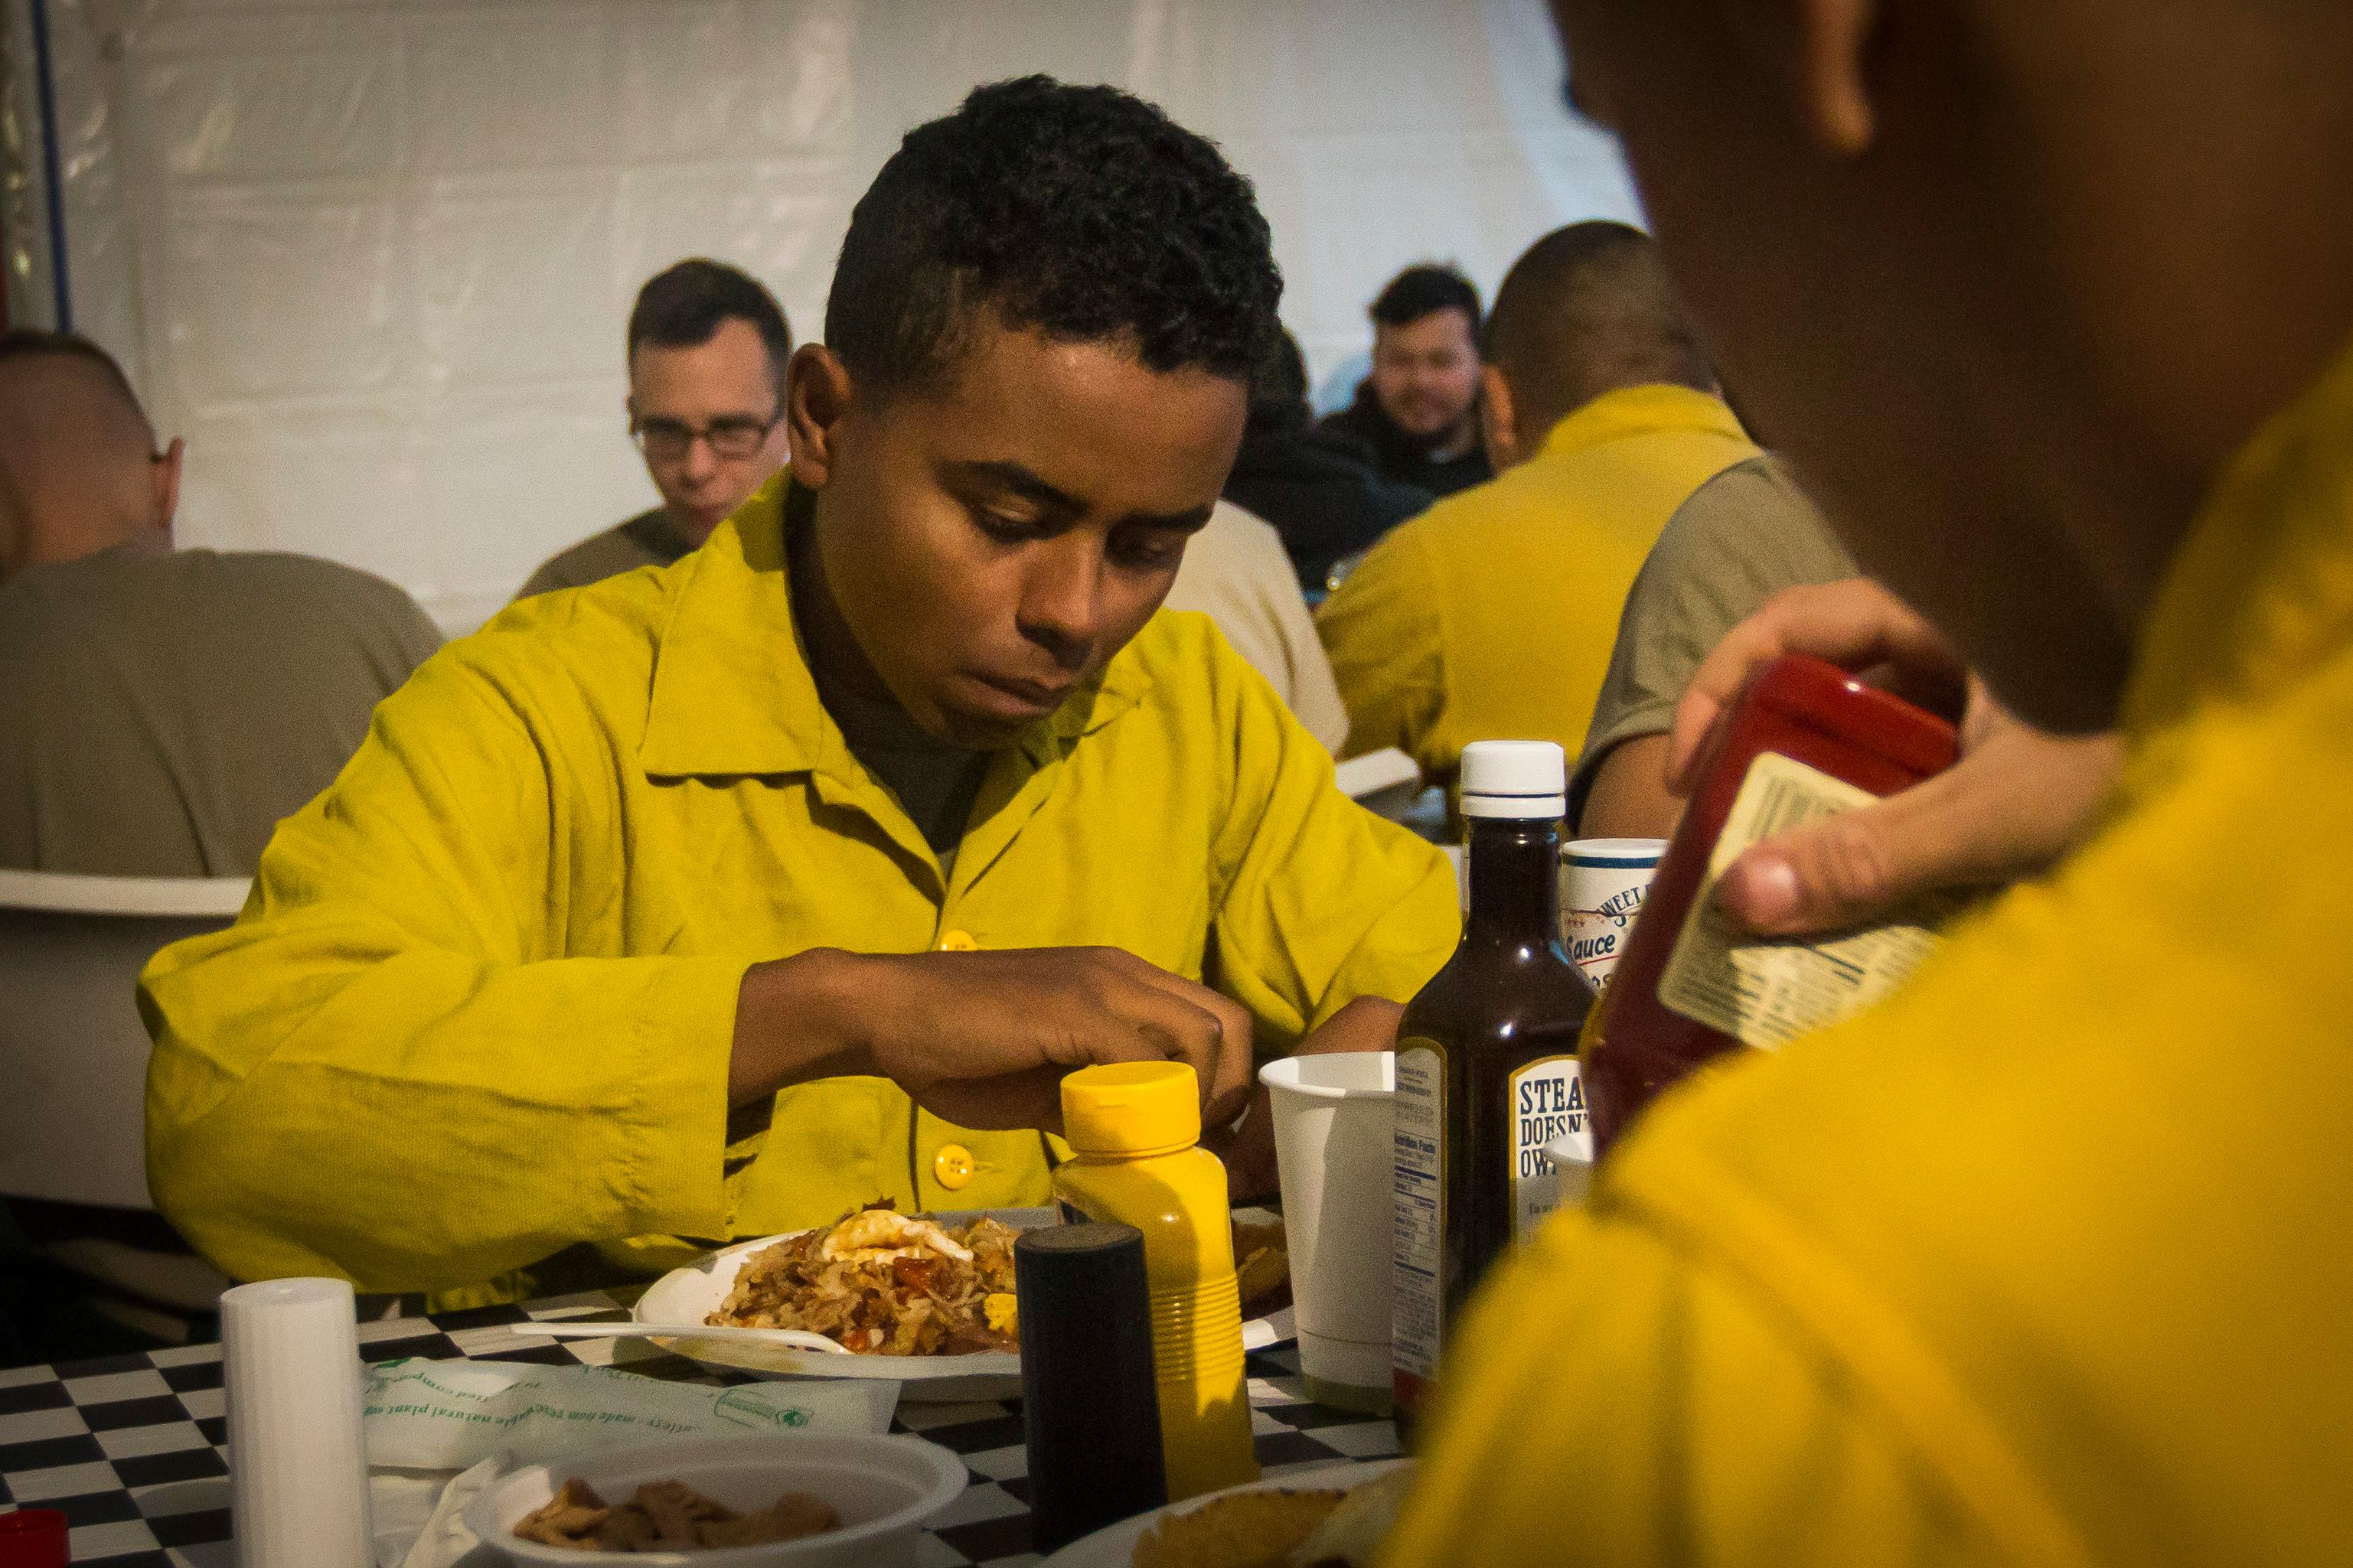 A U.S. Army Soldier assigned to 23rd Brigade Engineer Battalion, 1-2 Stryker Brigade Combat Team starts the day off right with a hearty breakfast at Glide Base Camp, Oregon, Sept. 8th. The Soldiers, having recently arrived at camp, will begin the first part of their tactical training to support the suppression of wildfires in the Umpqua North Complex in Oregon. (U.S. Army photo by Pvt. Adeline Witherspoon, 20th Public Affairs Detachment)